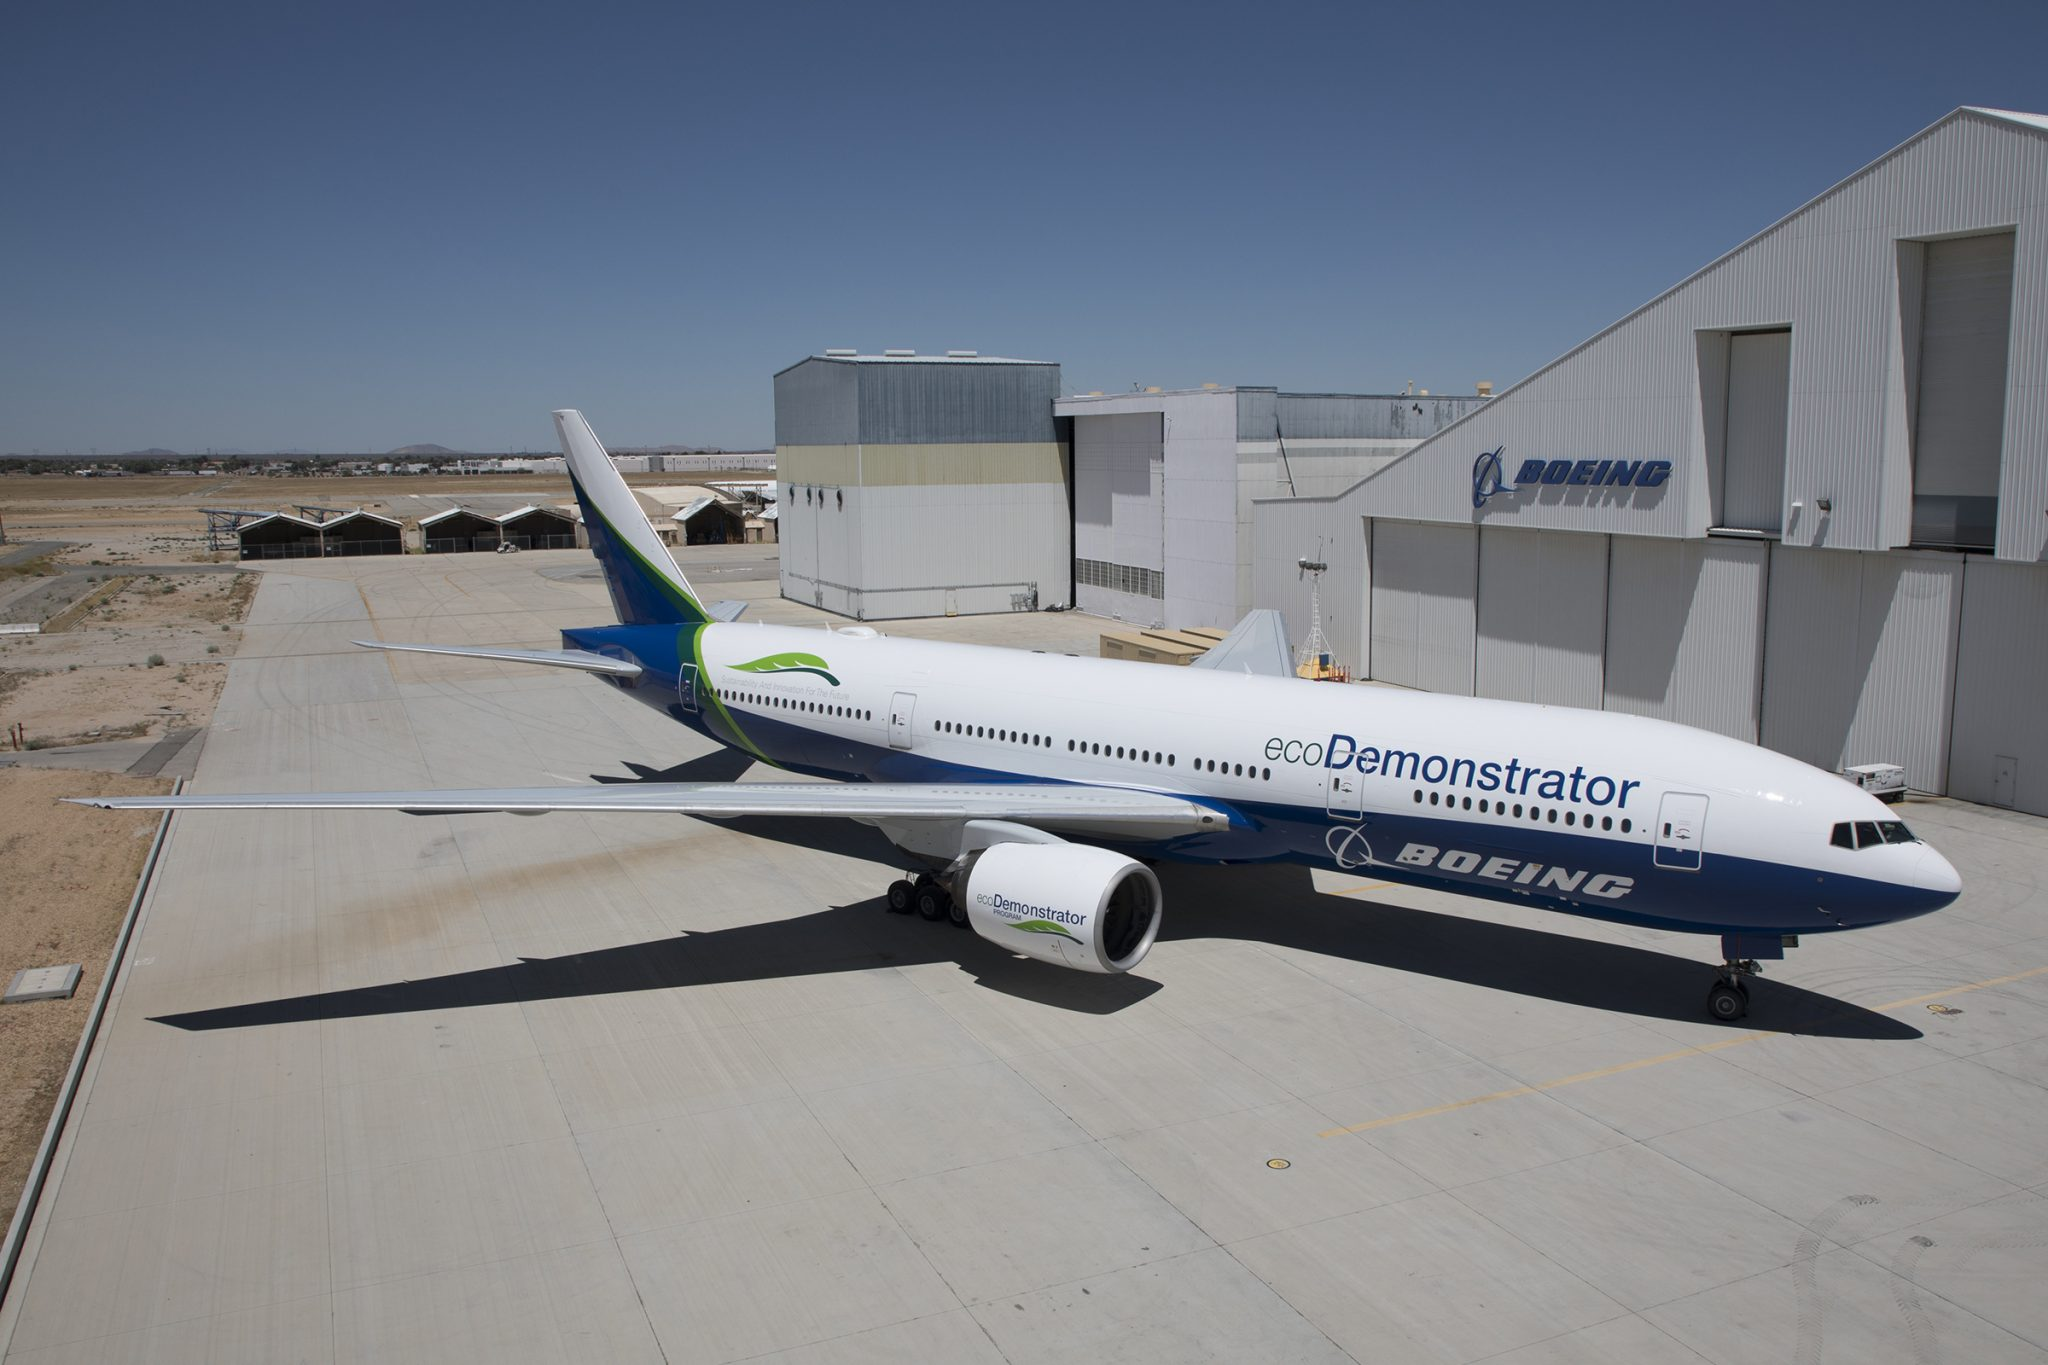 Boeing takes new technologies out of the lab and onto ecoDemonstrator flying test bed